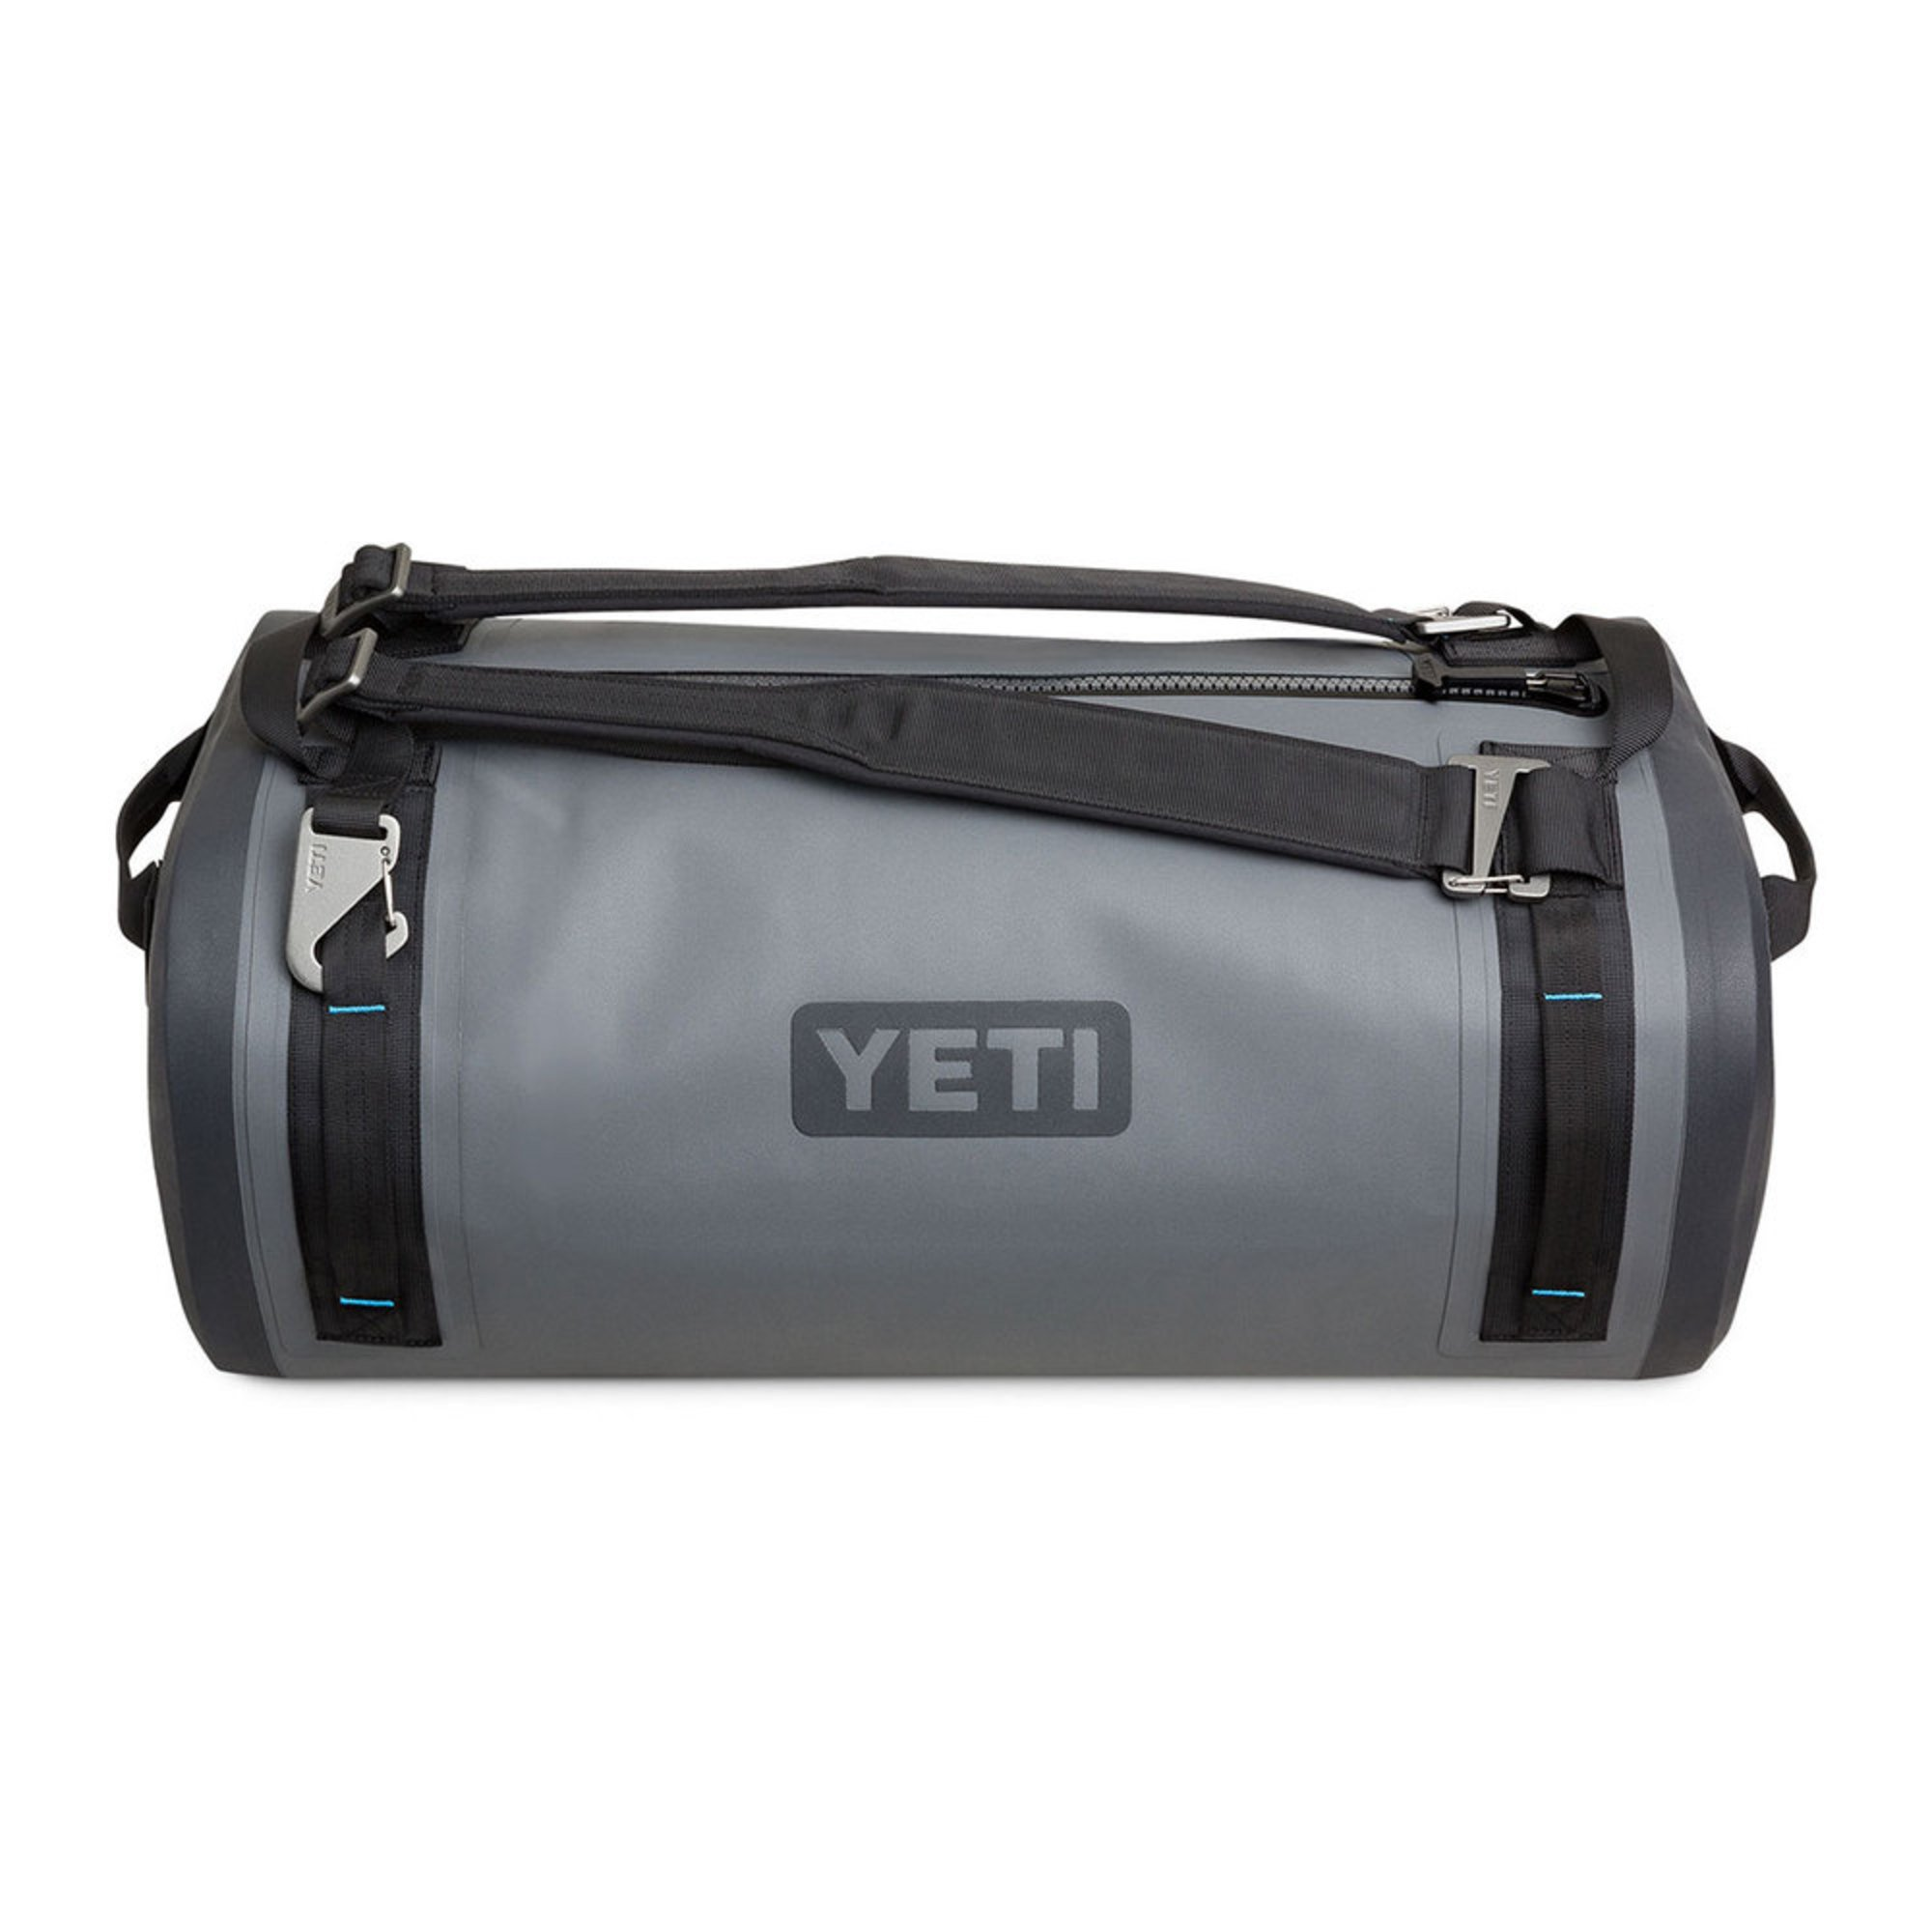 yeti panga 50 submersible duffel storm gray softside coolers fitness shop your navy. Black Bedroom Furniture Sets. Home Design Ideas